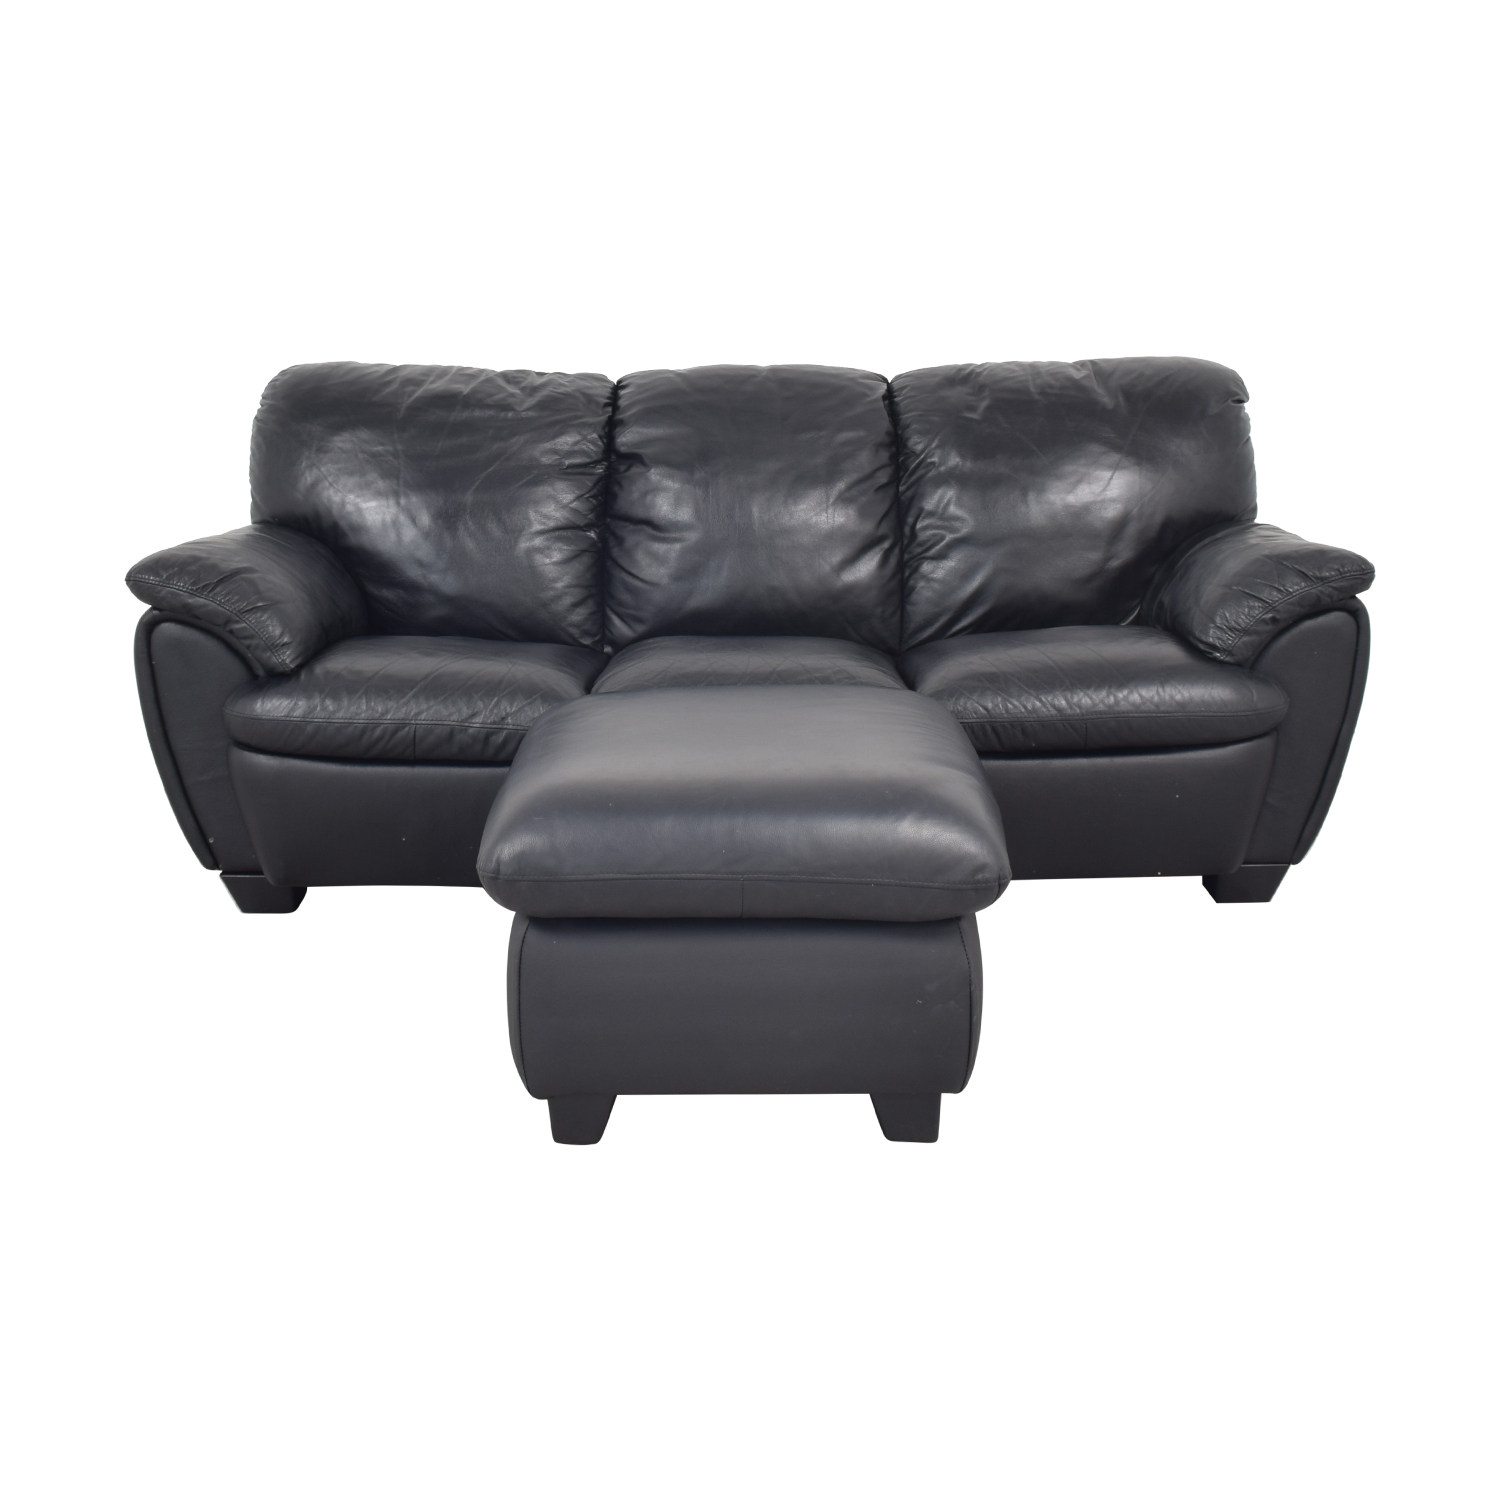 Broyhill Furniture Broyhill Leather Sofa and Ottoman ct